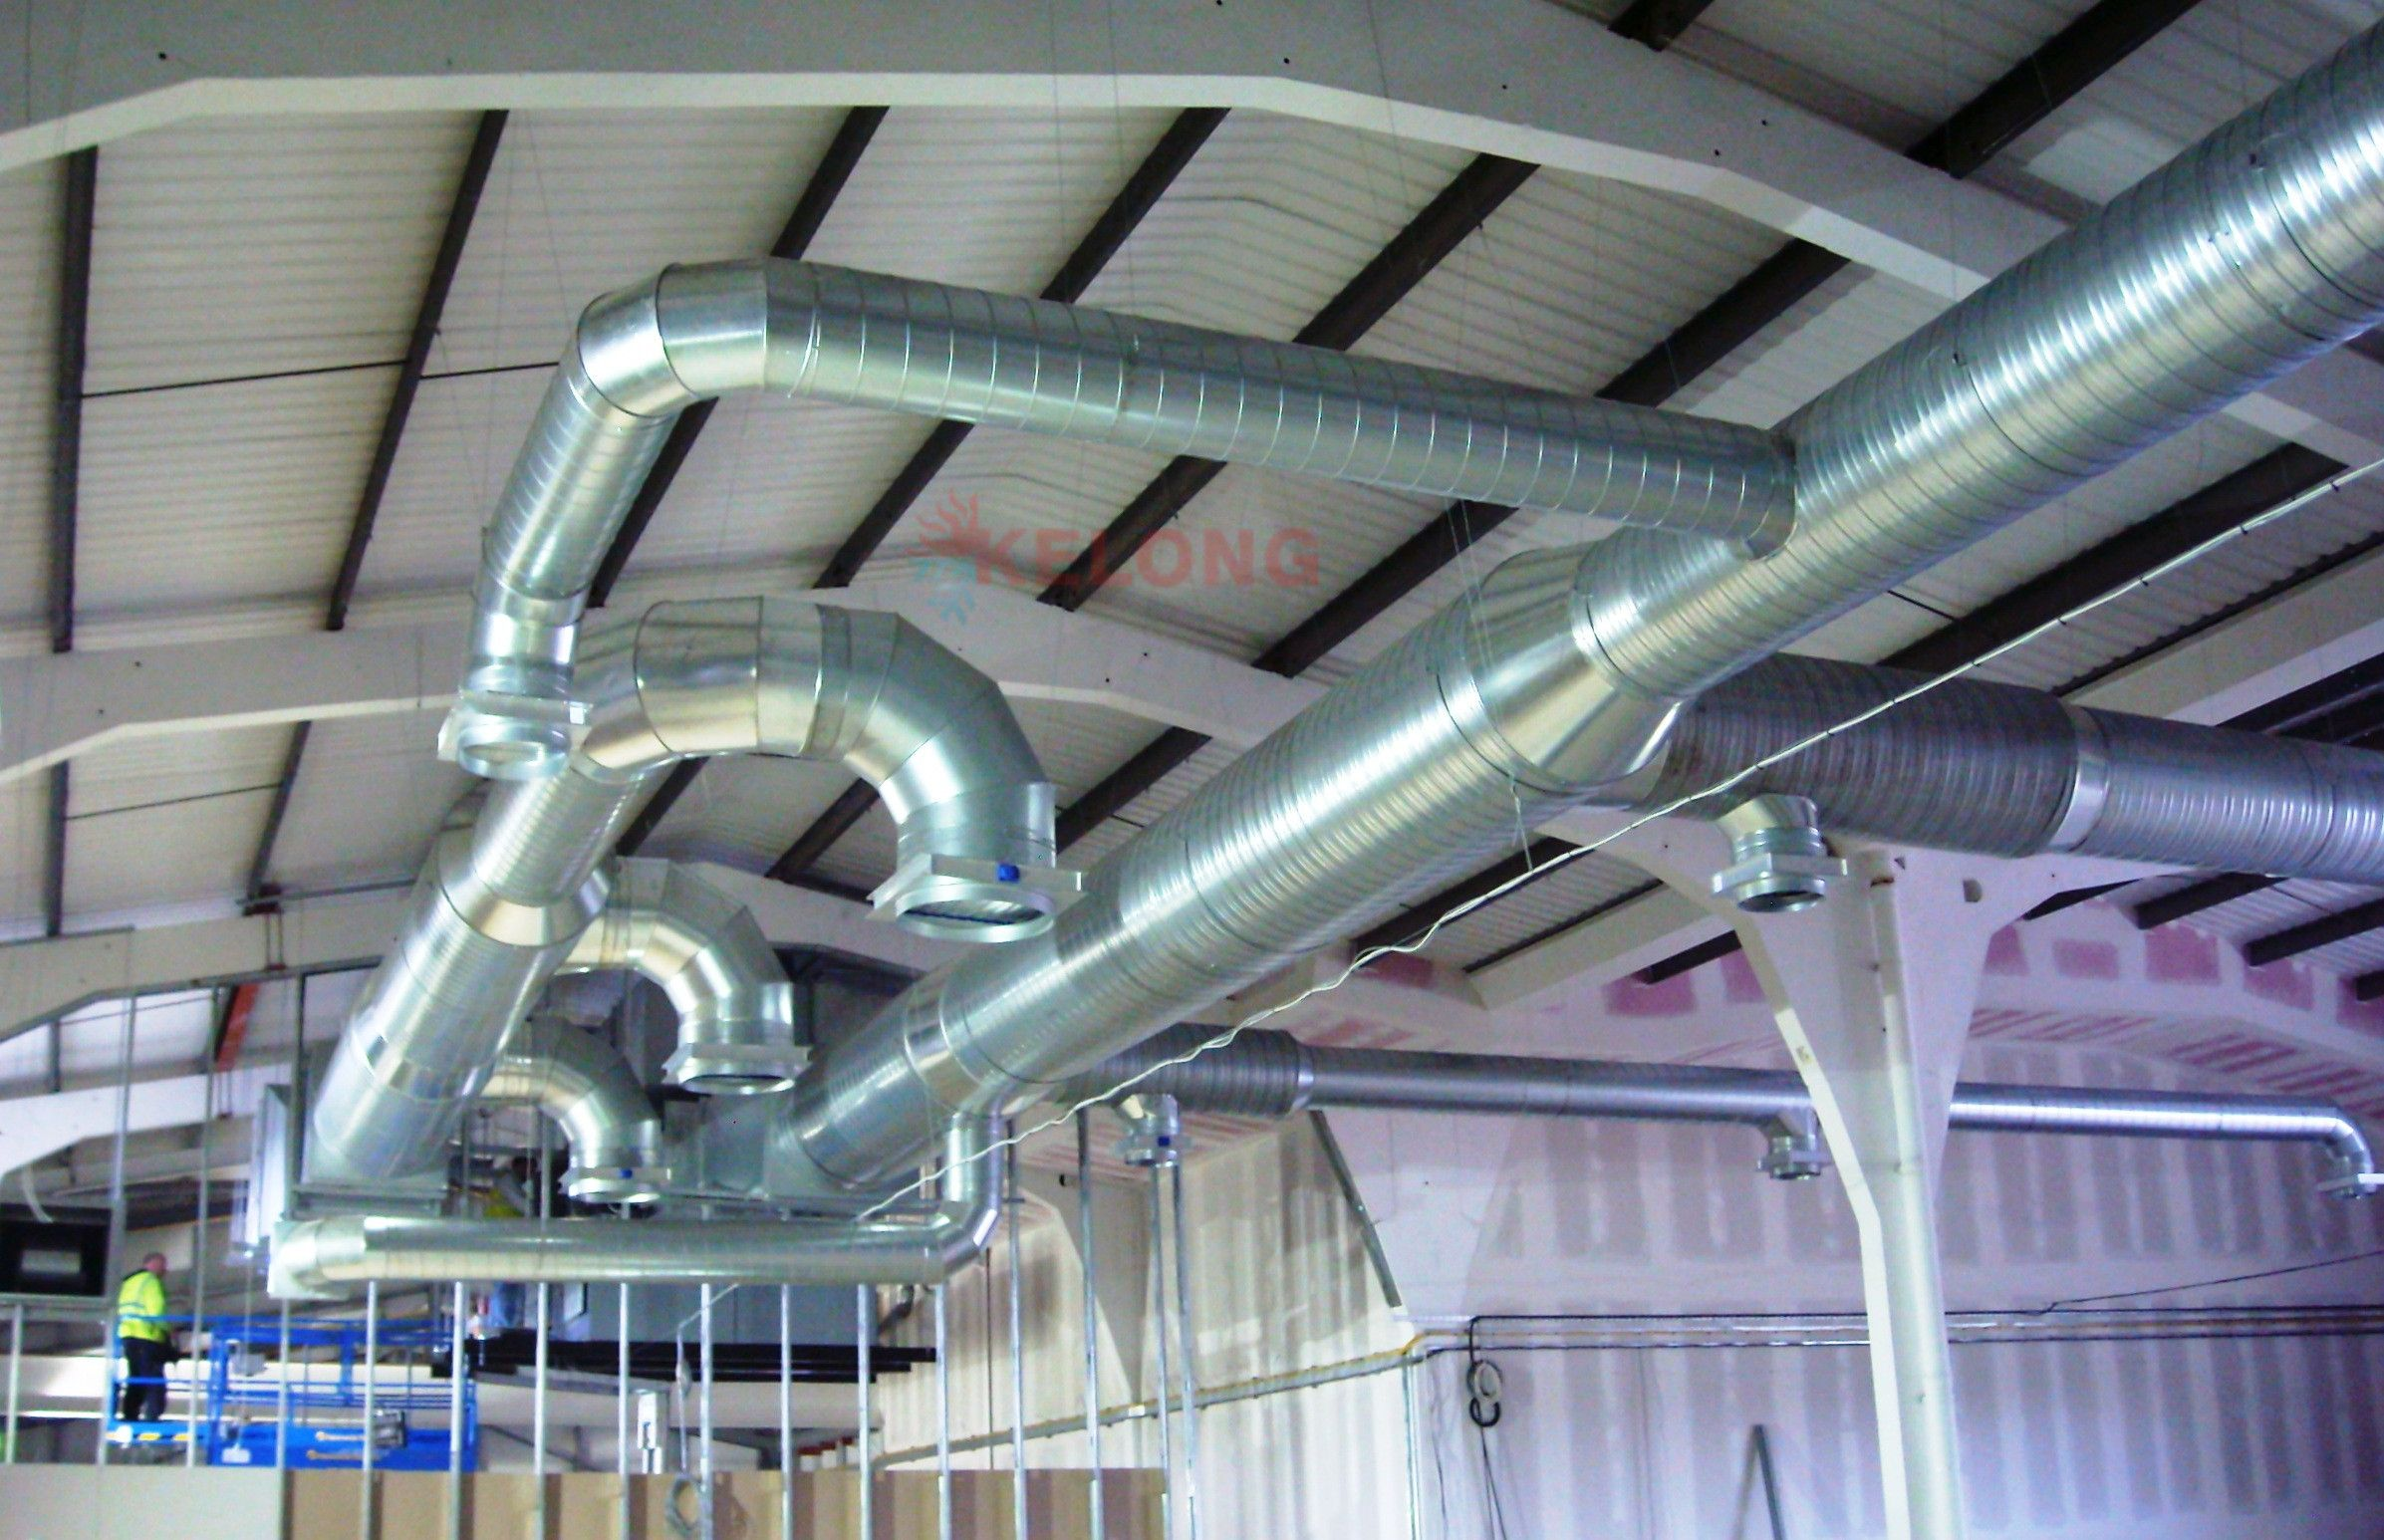 Kelong Hvac Is The Best Company To Provide Commercial Hvac Duct